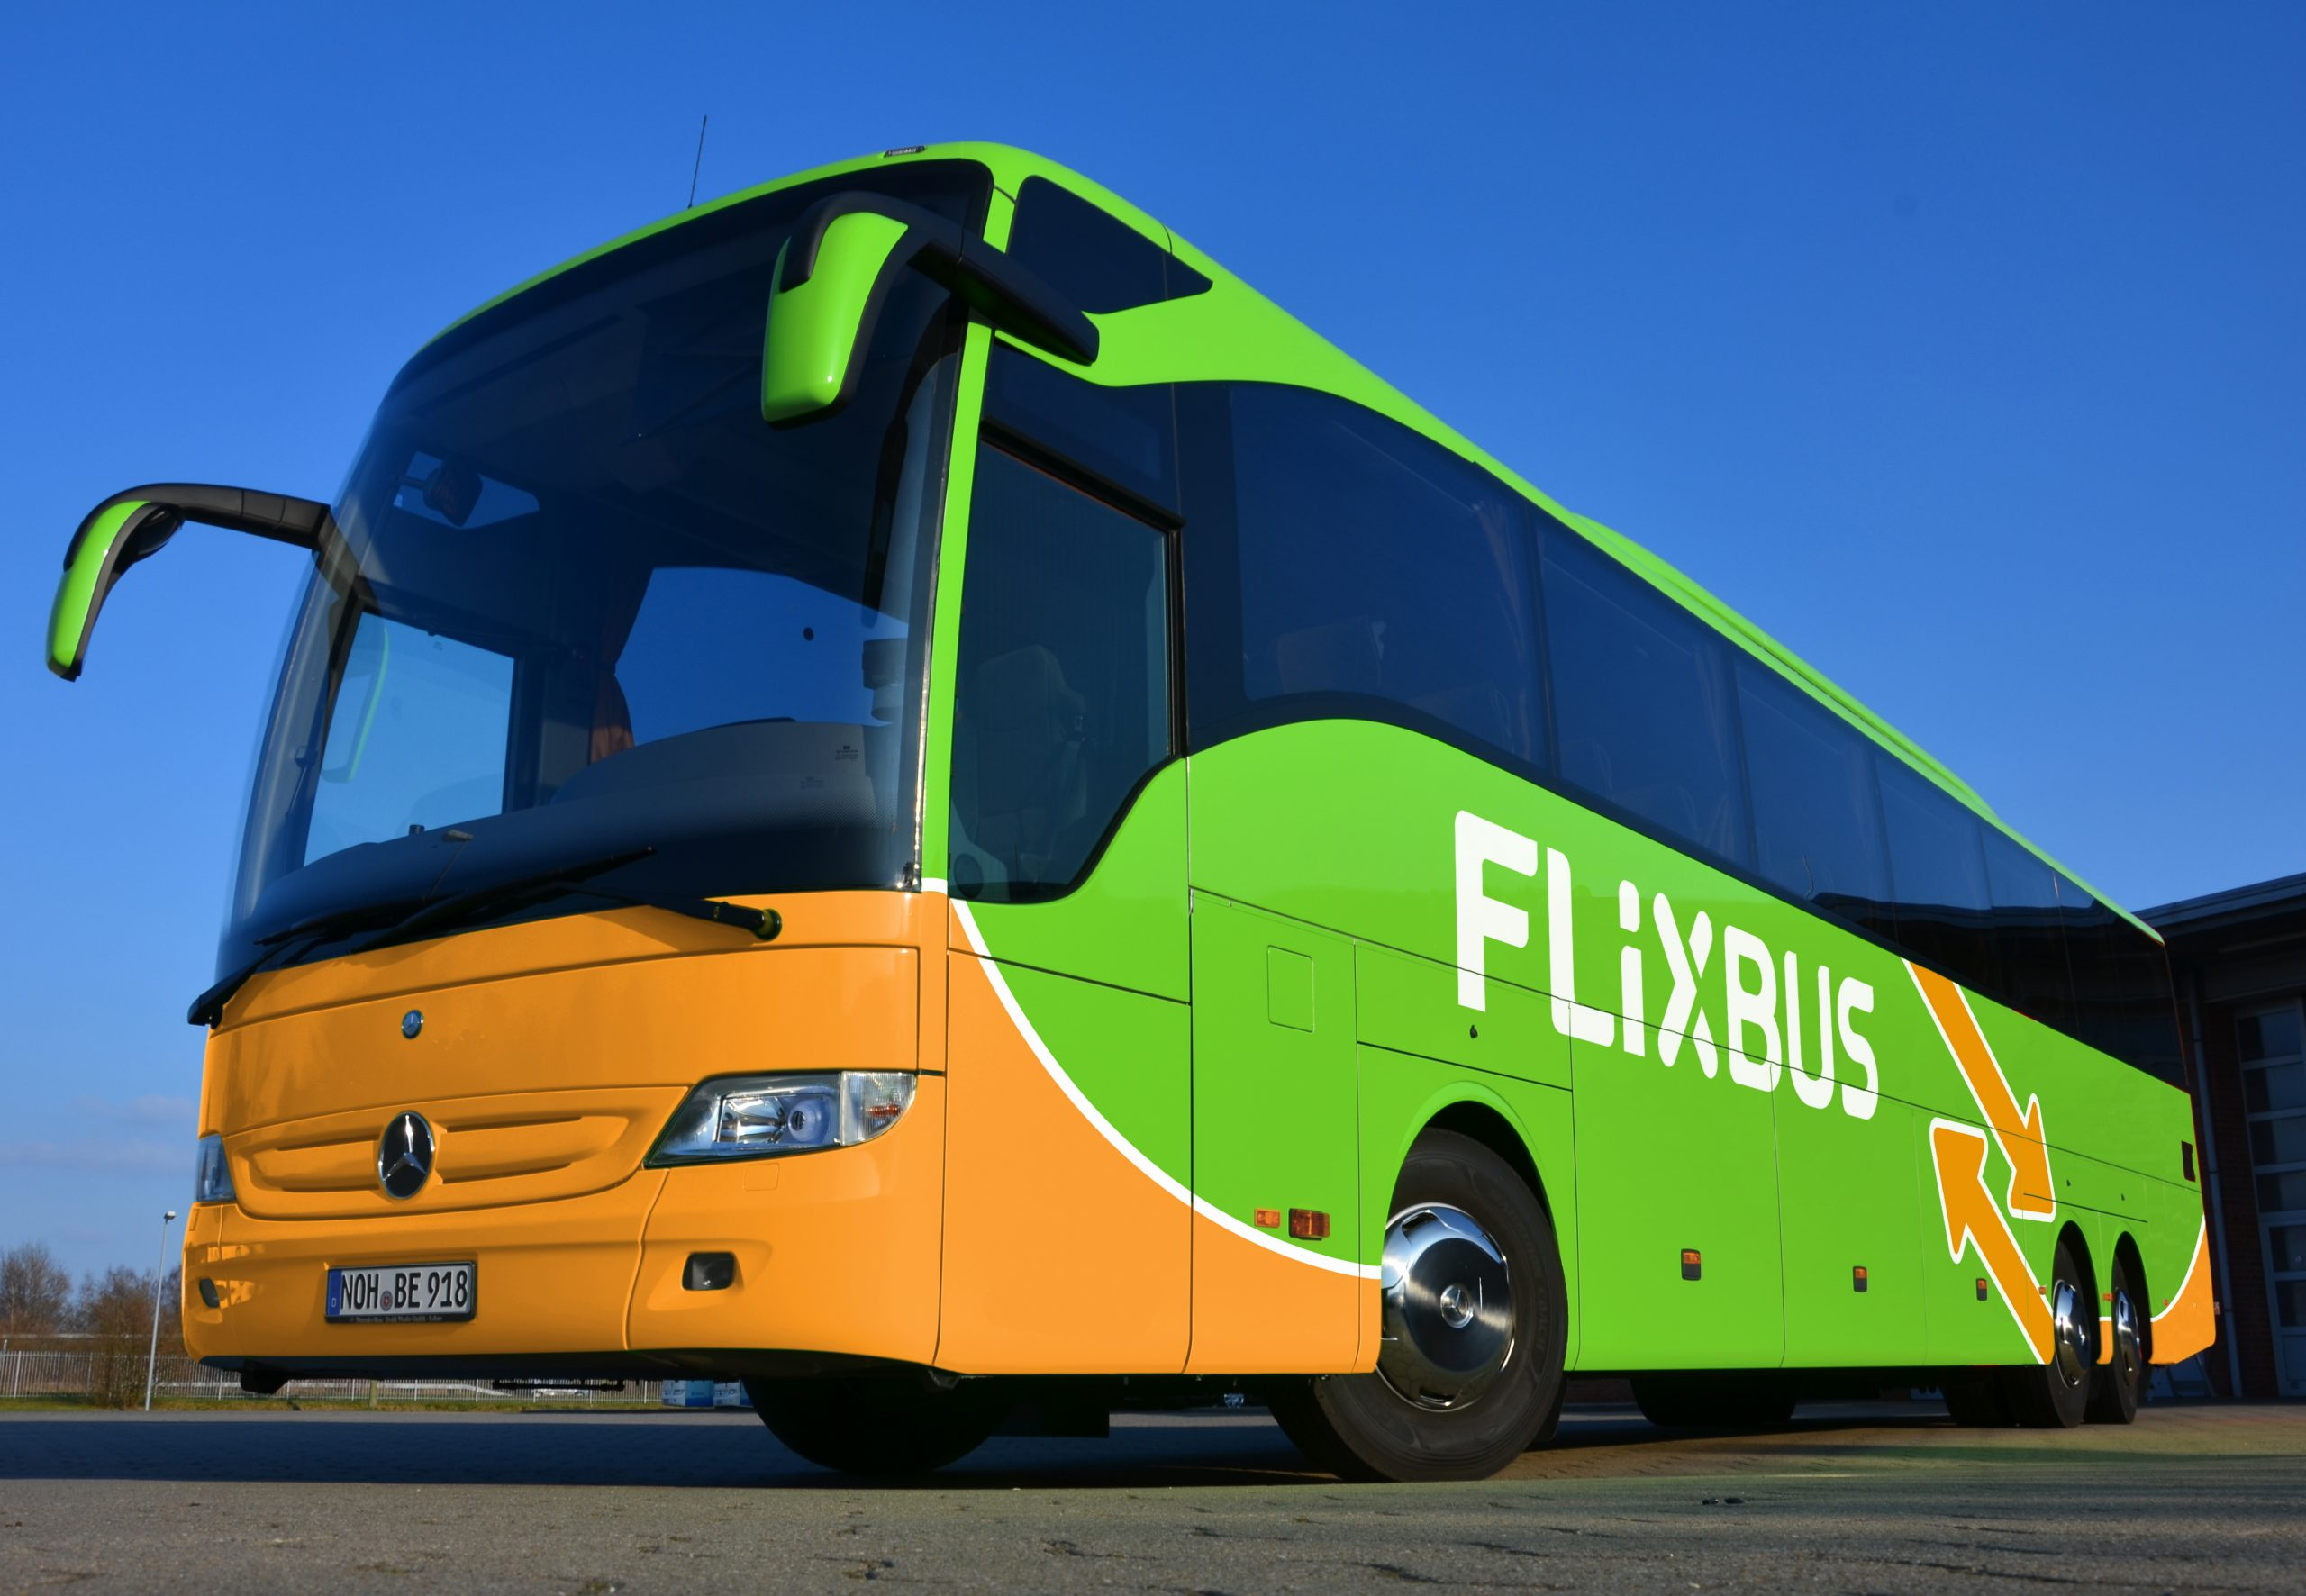 Lobby Collective Hostel and FlixBus for visiting Lecce and Salento